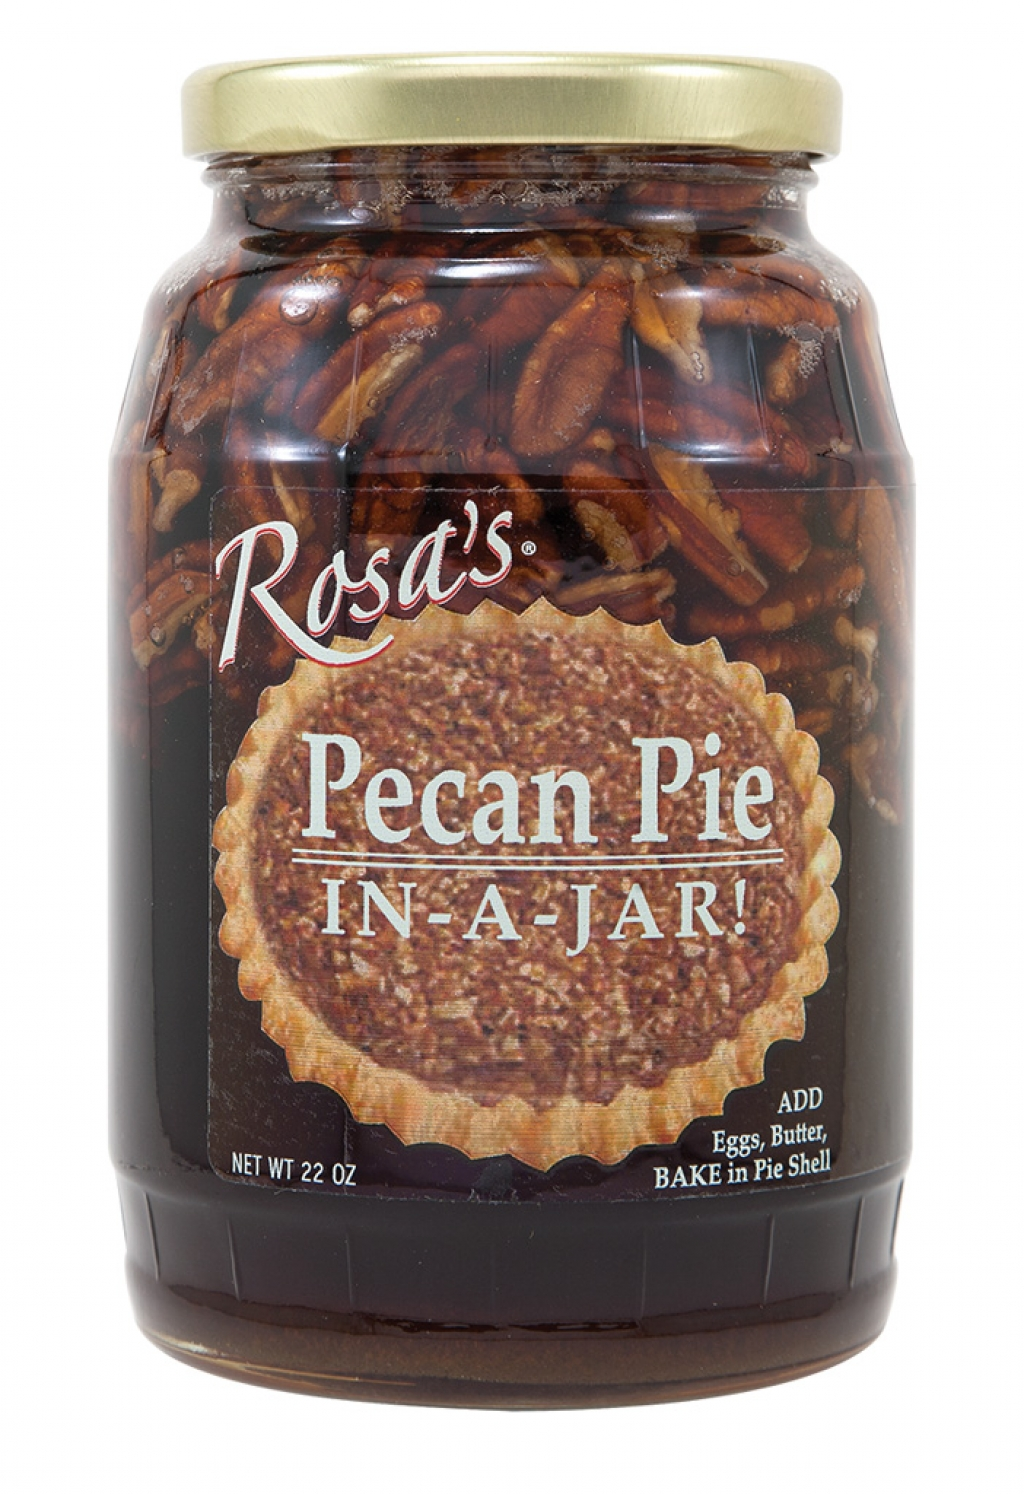 Rosa's Pecan Pie In–a–Jar